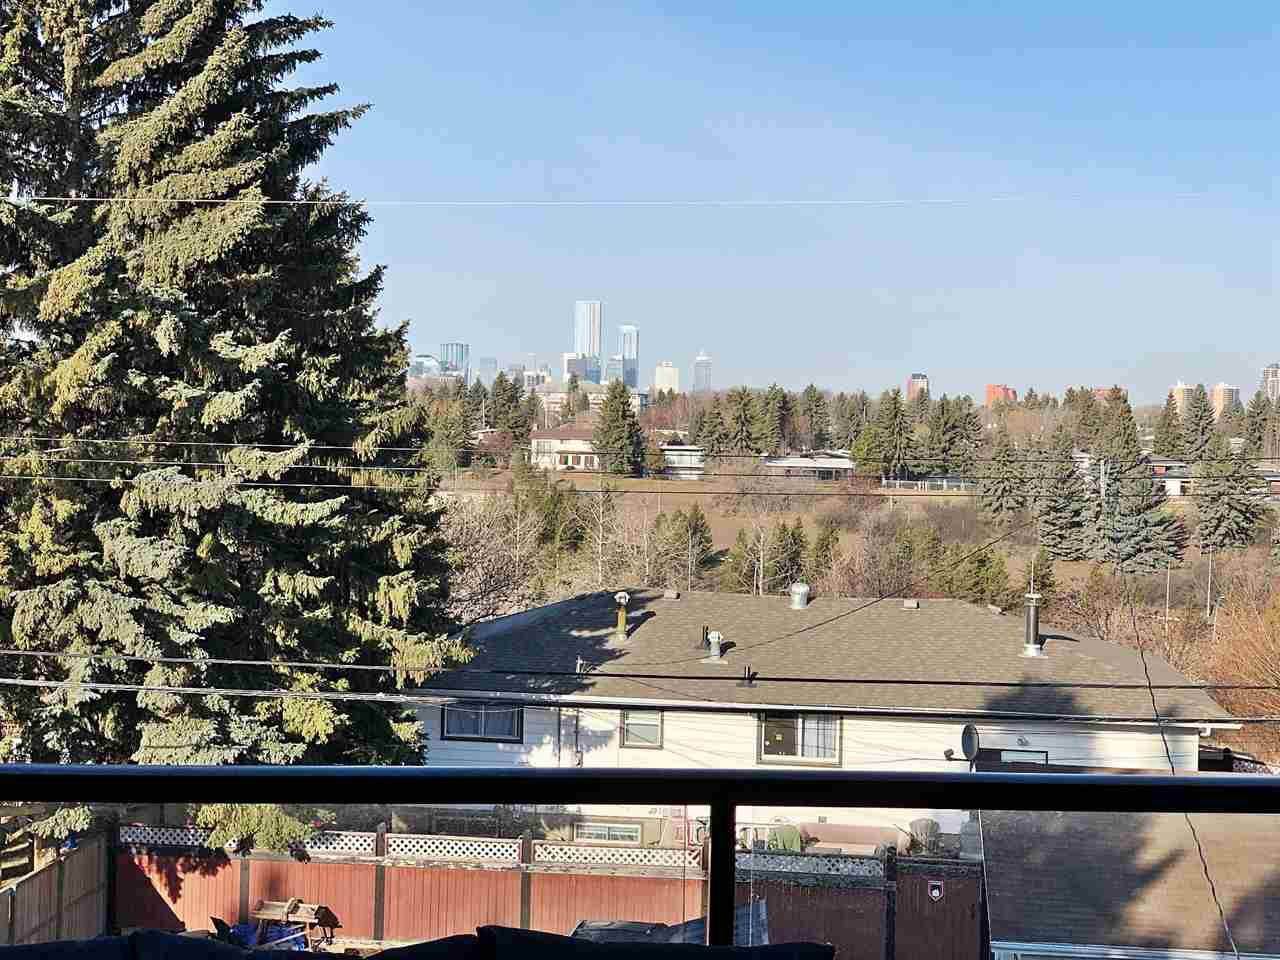 Main Photo: 10622 69 ST NW in Edmonton: Zone 19 House for sale : MLS®# E4149723